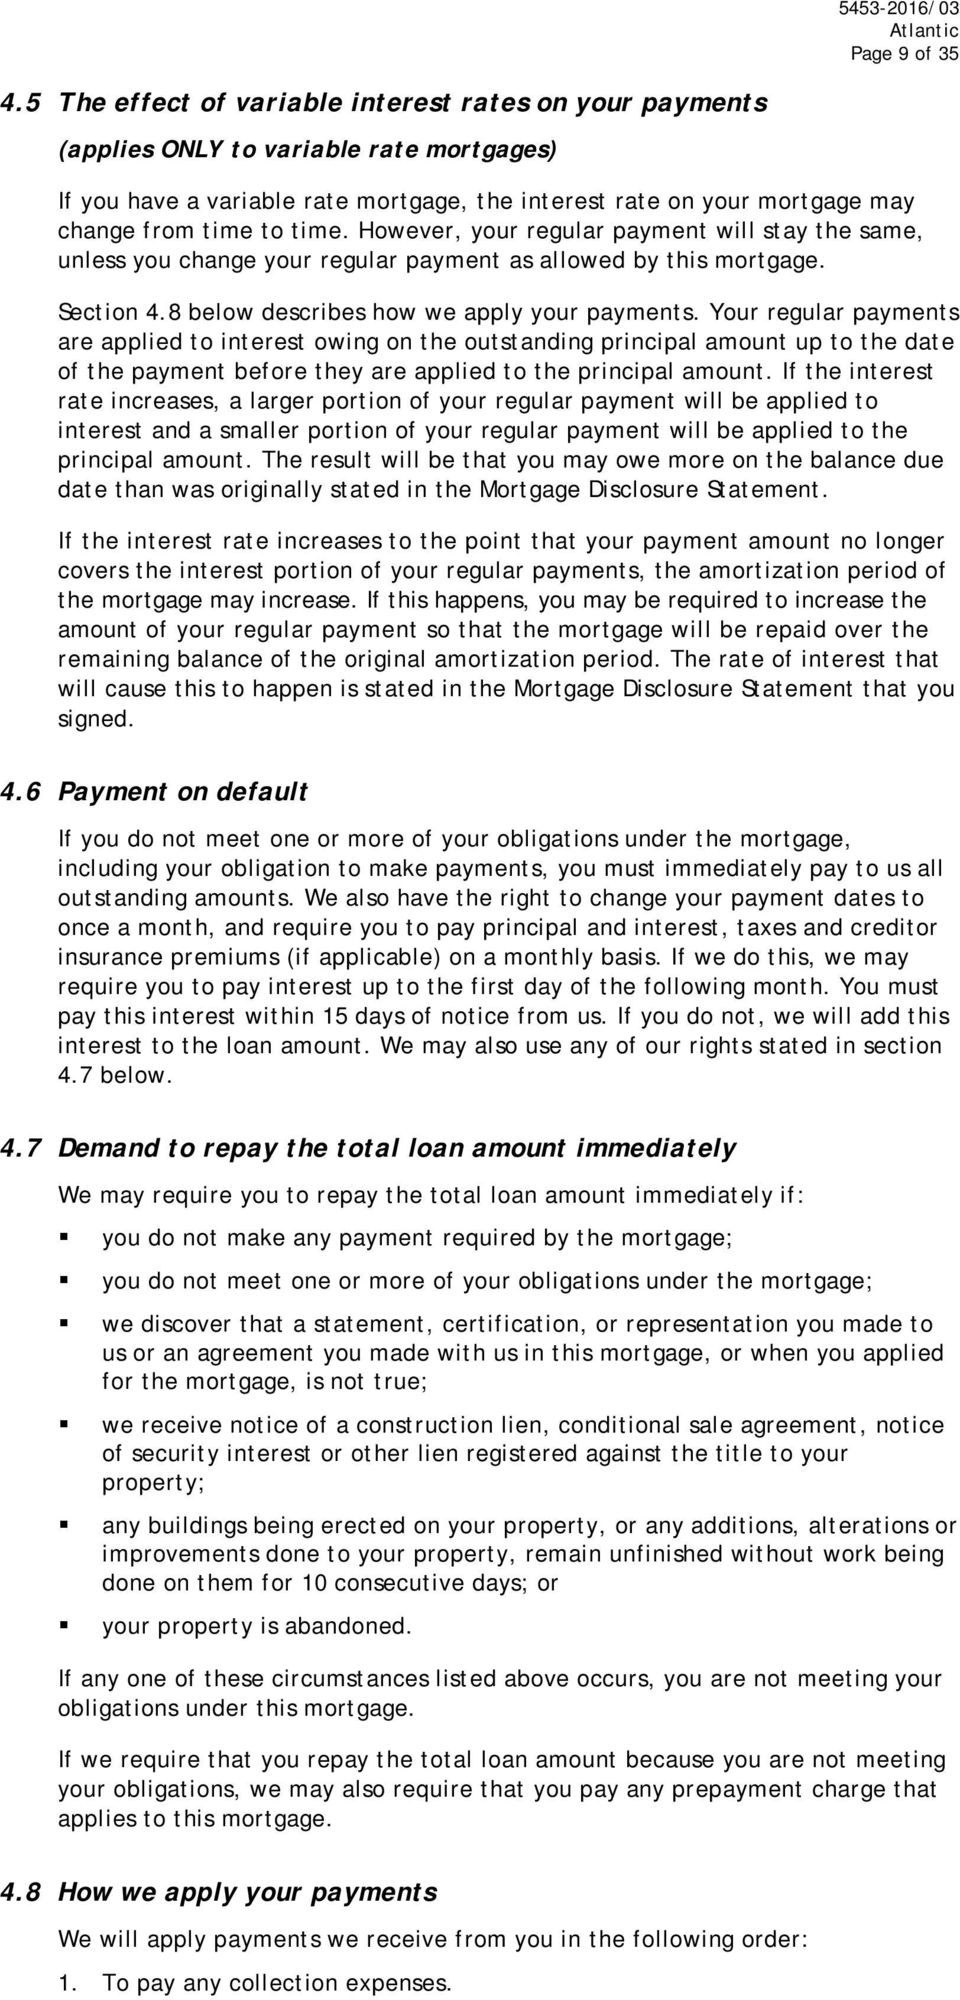 time. However, your regular payment will stay the same, unless you change your regular payment as allowed by this mortgage. Section 4.8 below describes how we apply your payments.